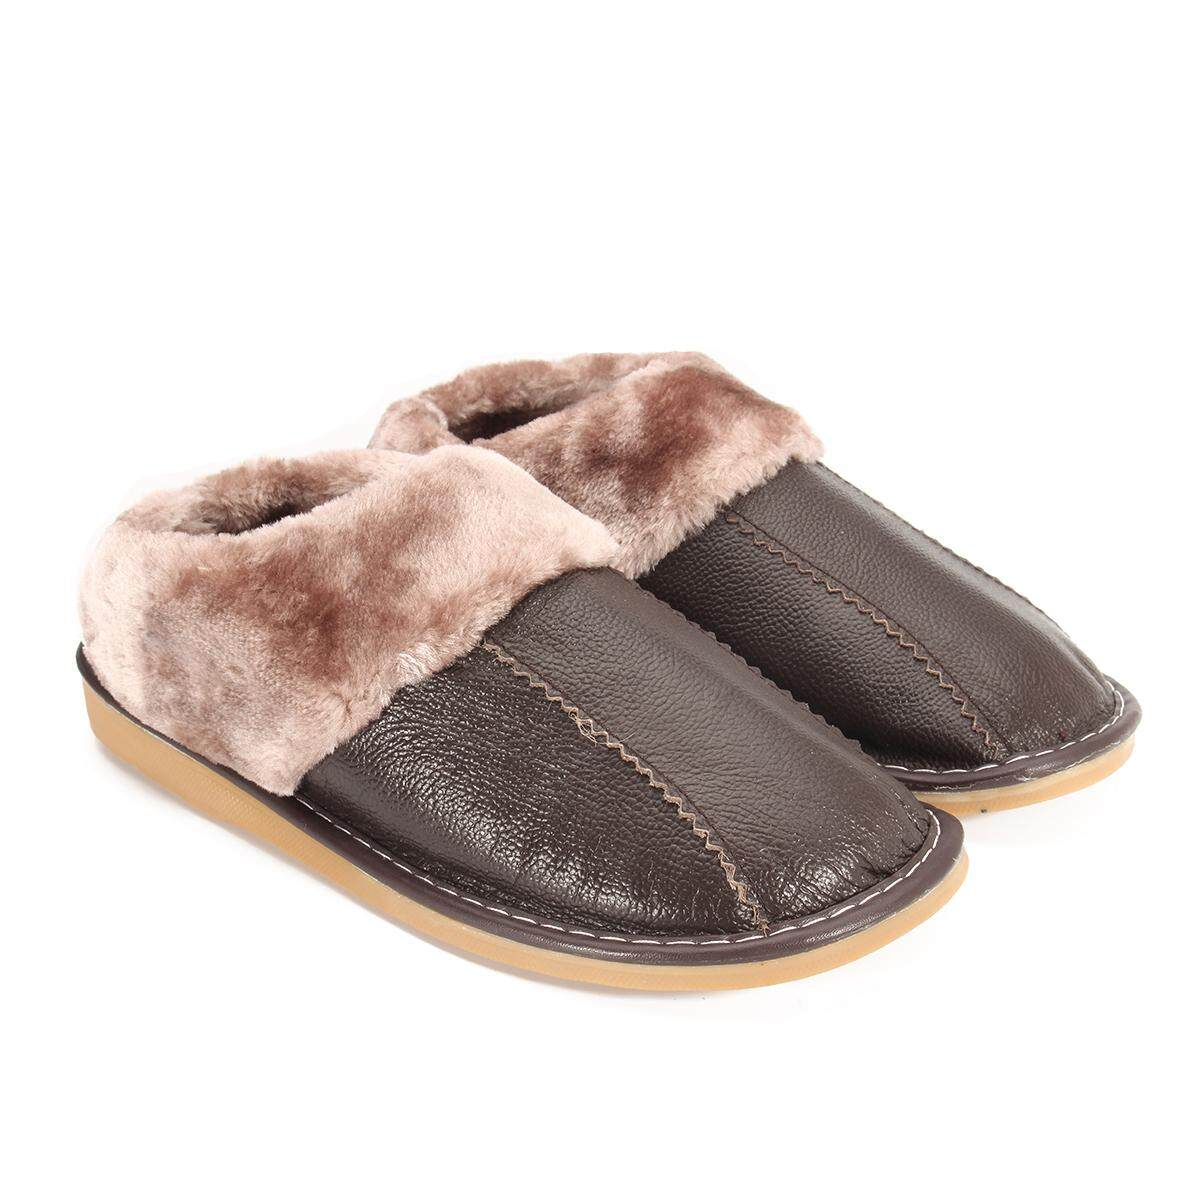 e5fb8eb0f Winter Warm Fuzzy Cow Leather House Slippers for Men Fleece Lined Home Shoes